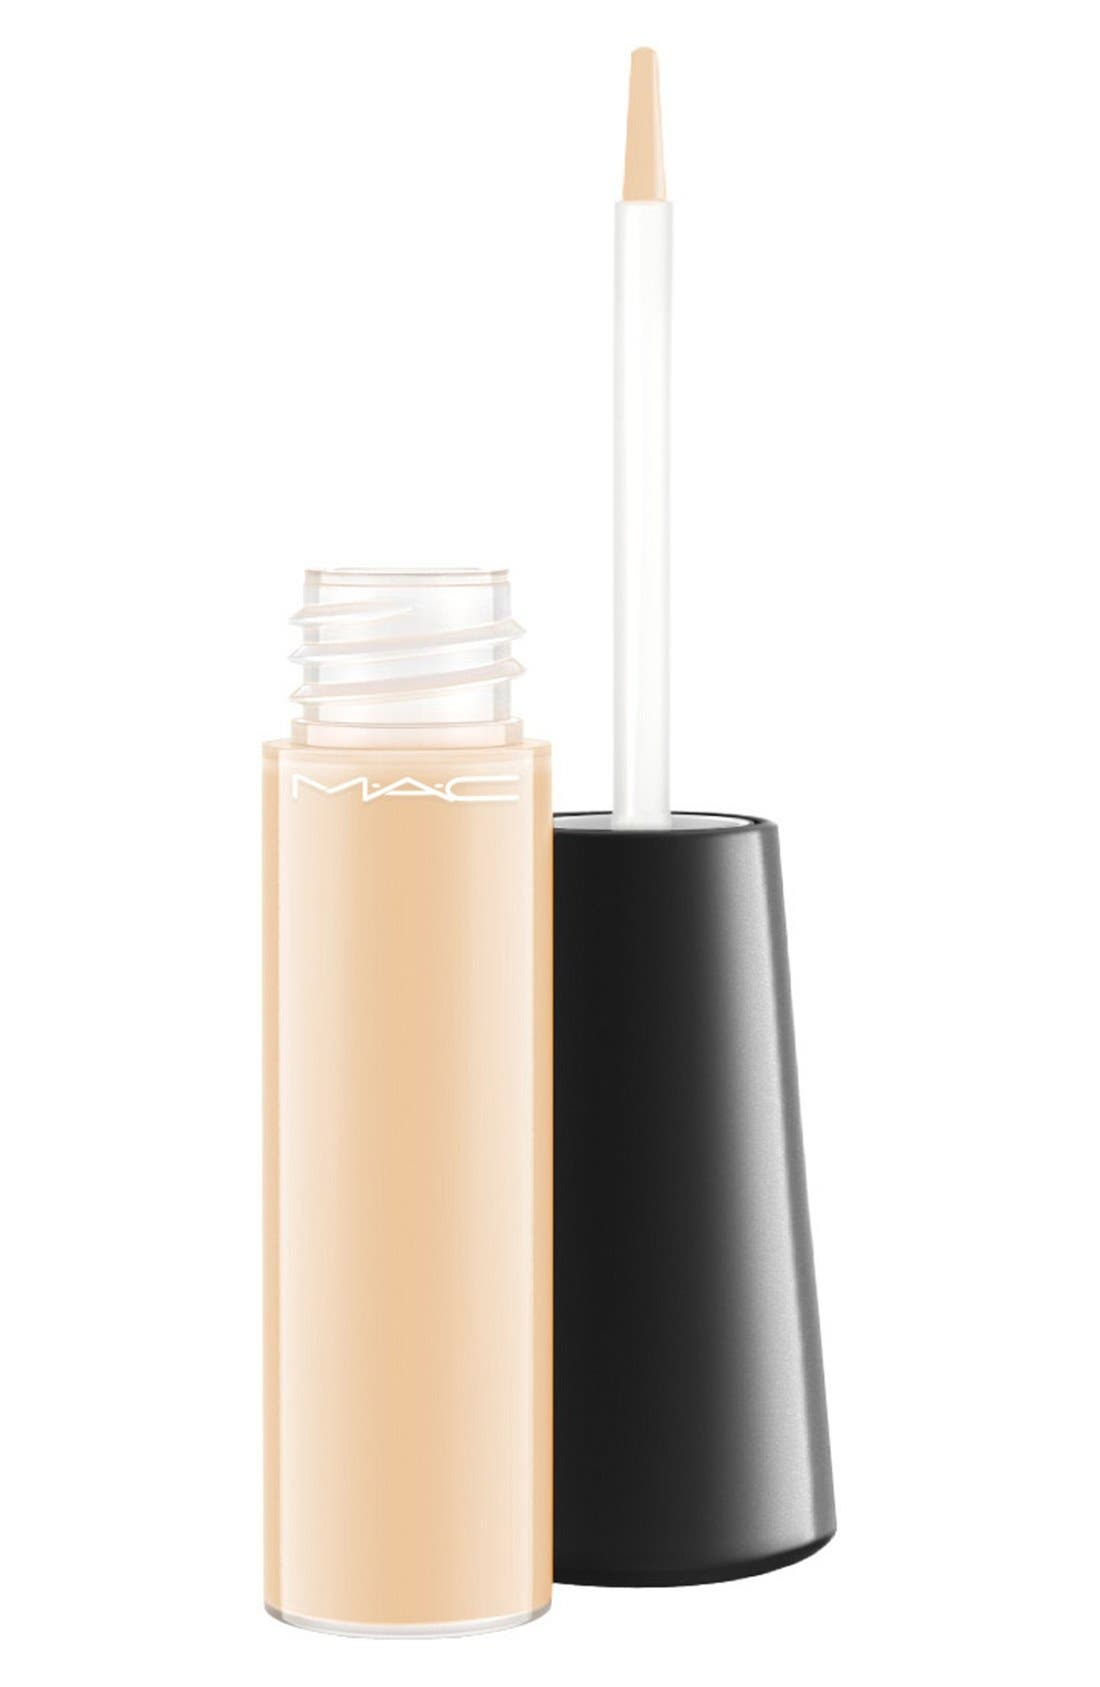 What it is: Enriched with minerals and nourishing botanicals, this creamy, easy-to-blend concealer covers and perfects while nourishing and moisturizing your skin. Who it\\\'s for: Anyone who wants sheer to medium coverage with a natural satin finish. What it does: Its cushiony texture makes the concealer comfortable for prolonged wear. Shade guide:- C: Cool (golden, olive undertones)- N: Neutral (beige undertones)- NW: Neutral Warm (pink beige